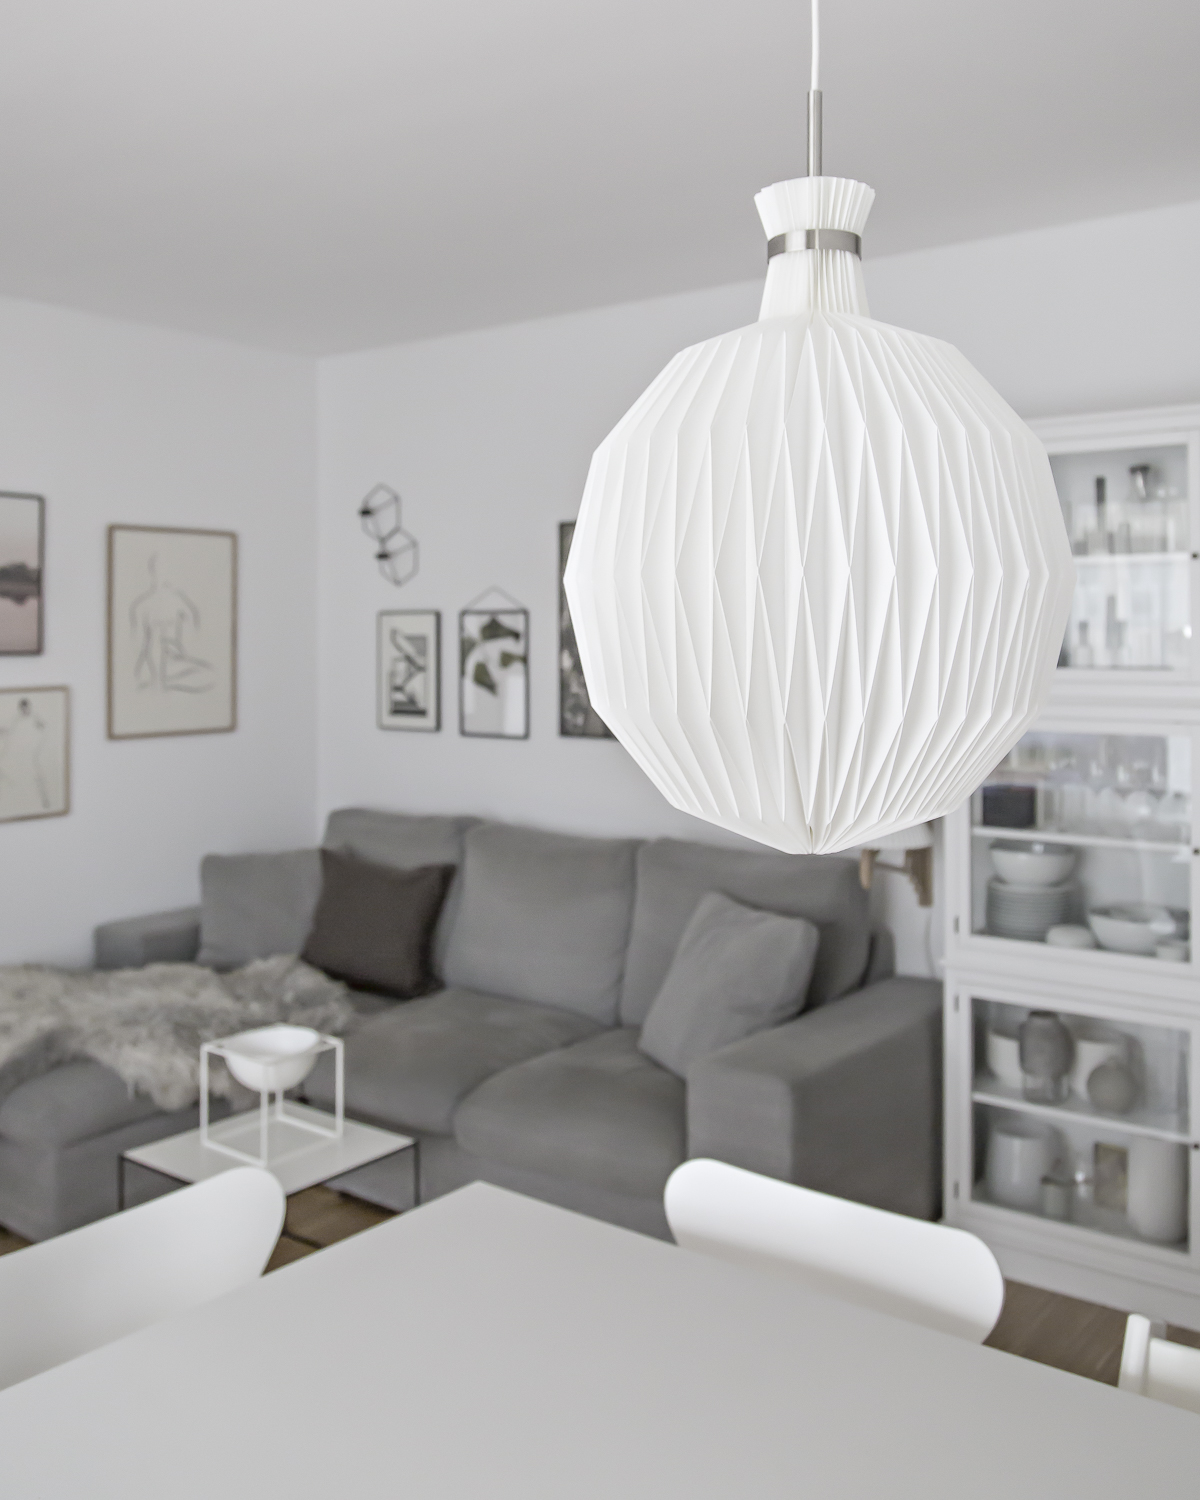 Le Klint 101 – probably one of the most beautiful lamps in the world